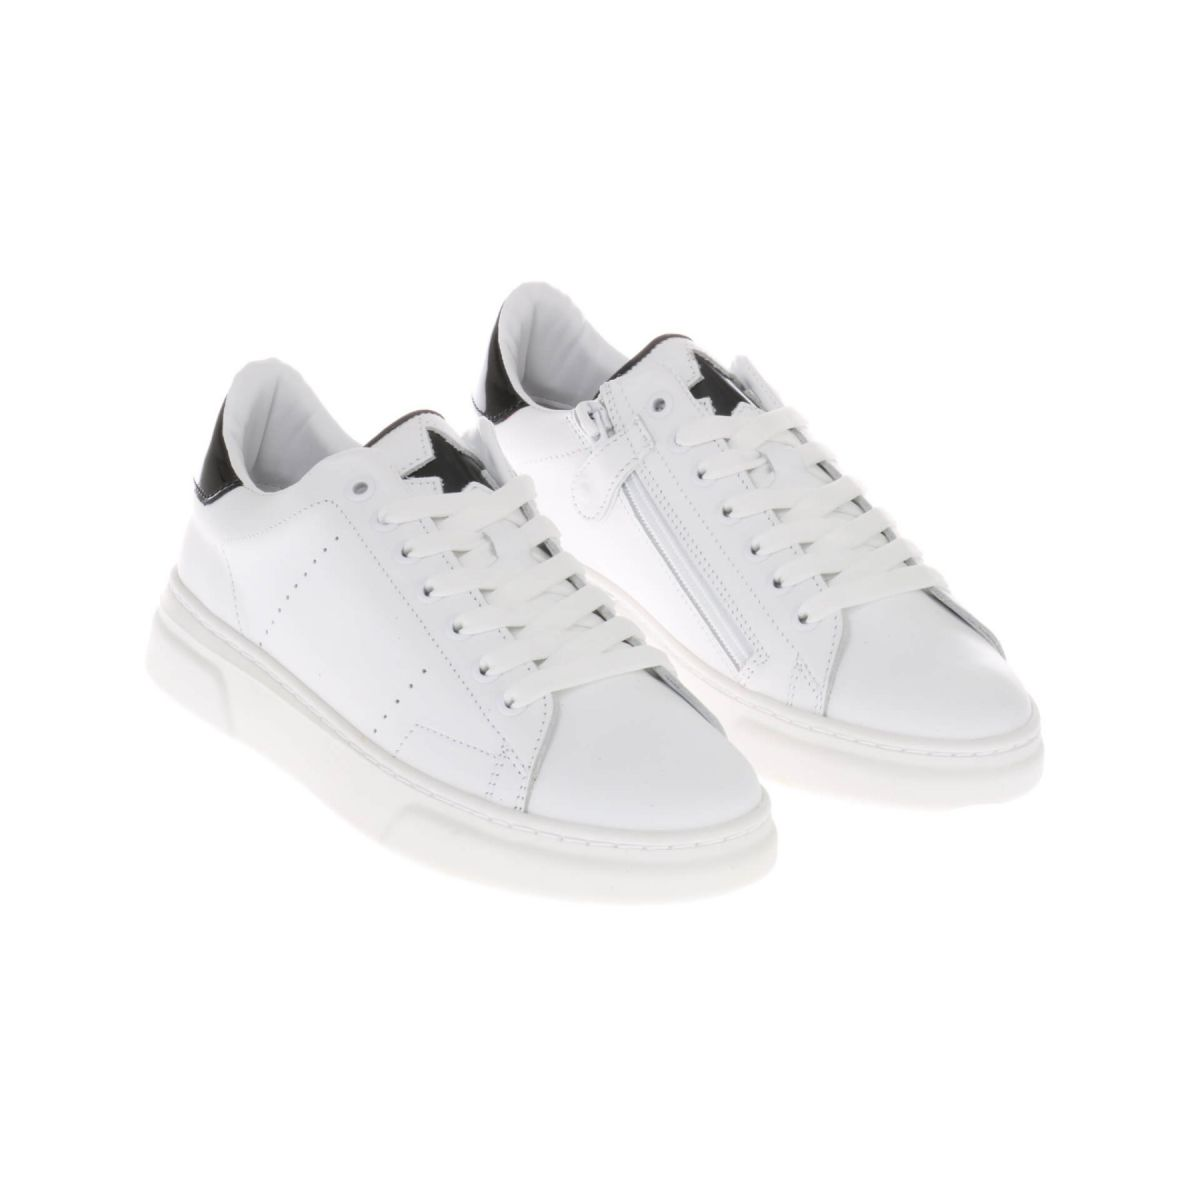 HIP H1279 Sneakers Wit Zwart Lak